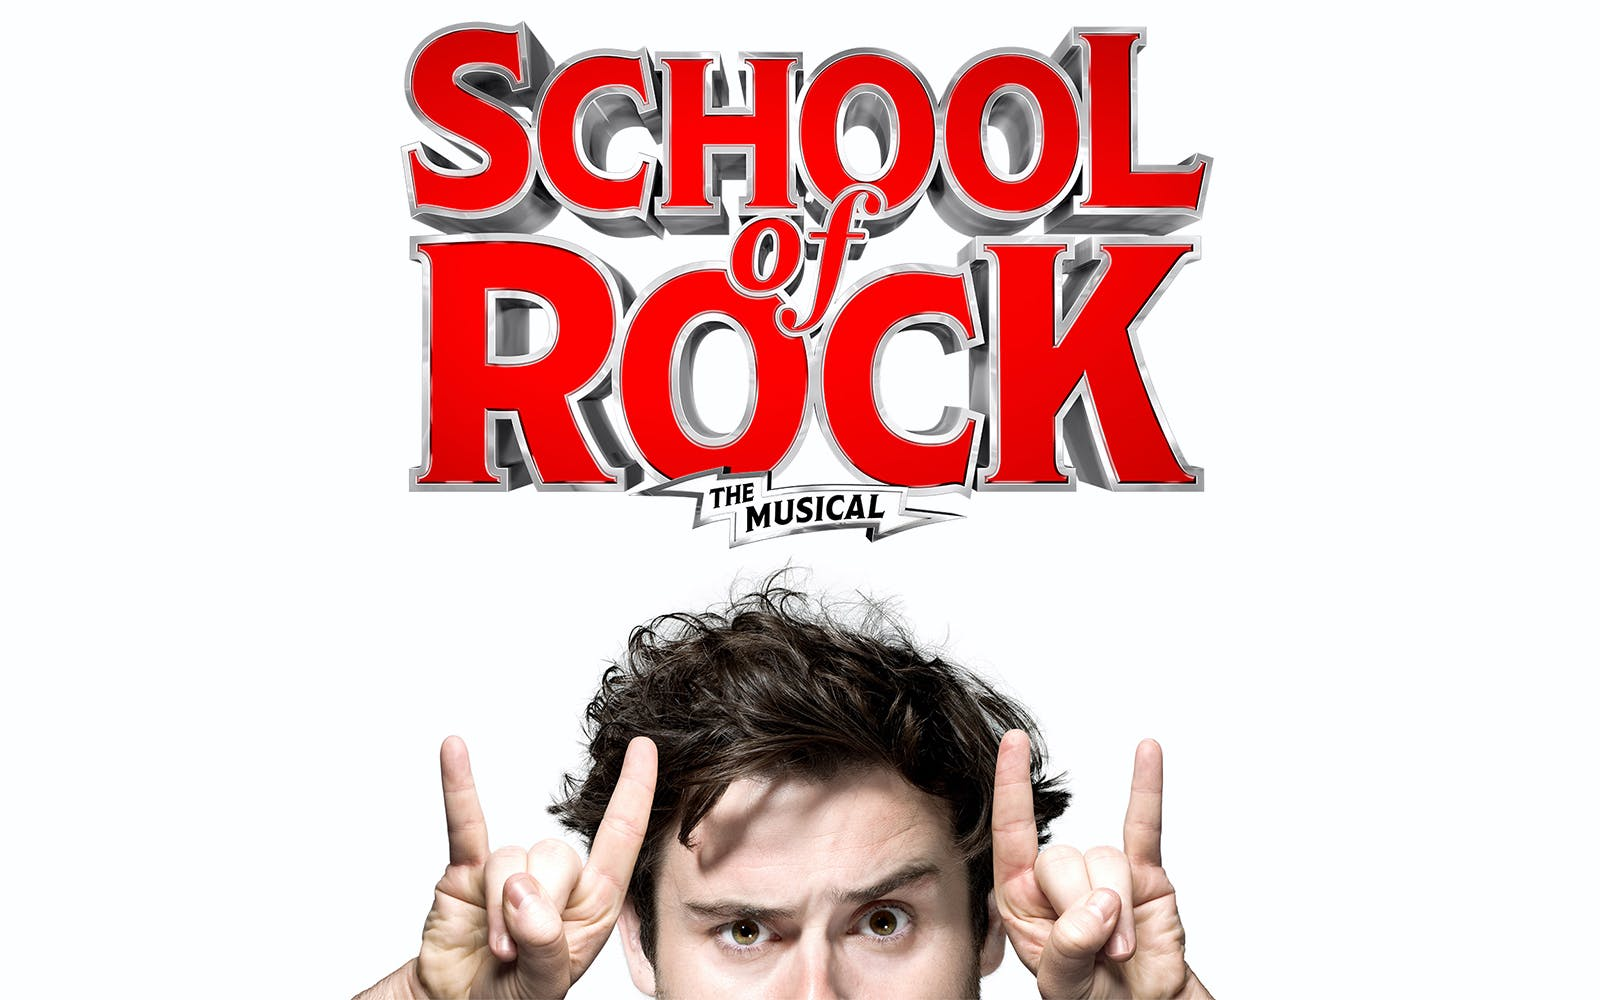 Best west end Shows School of rock London